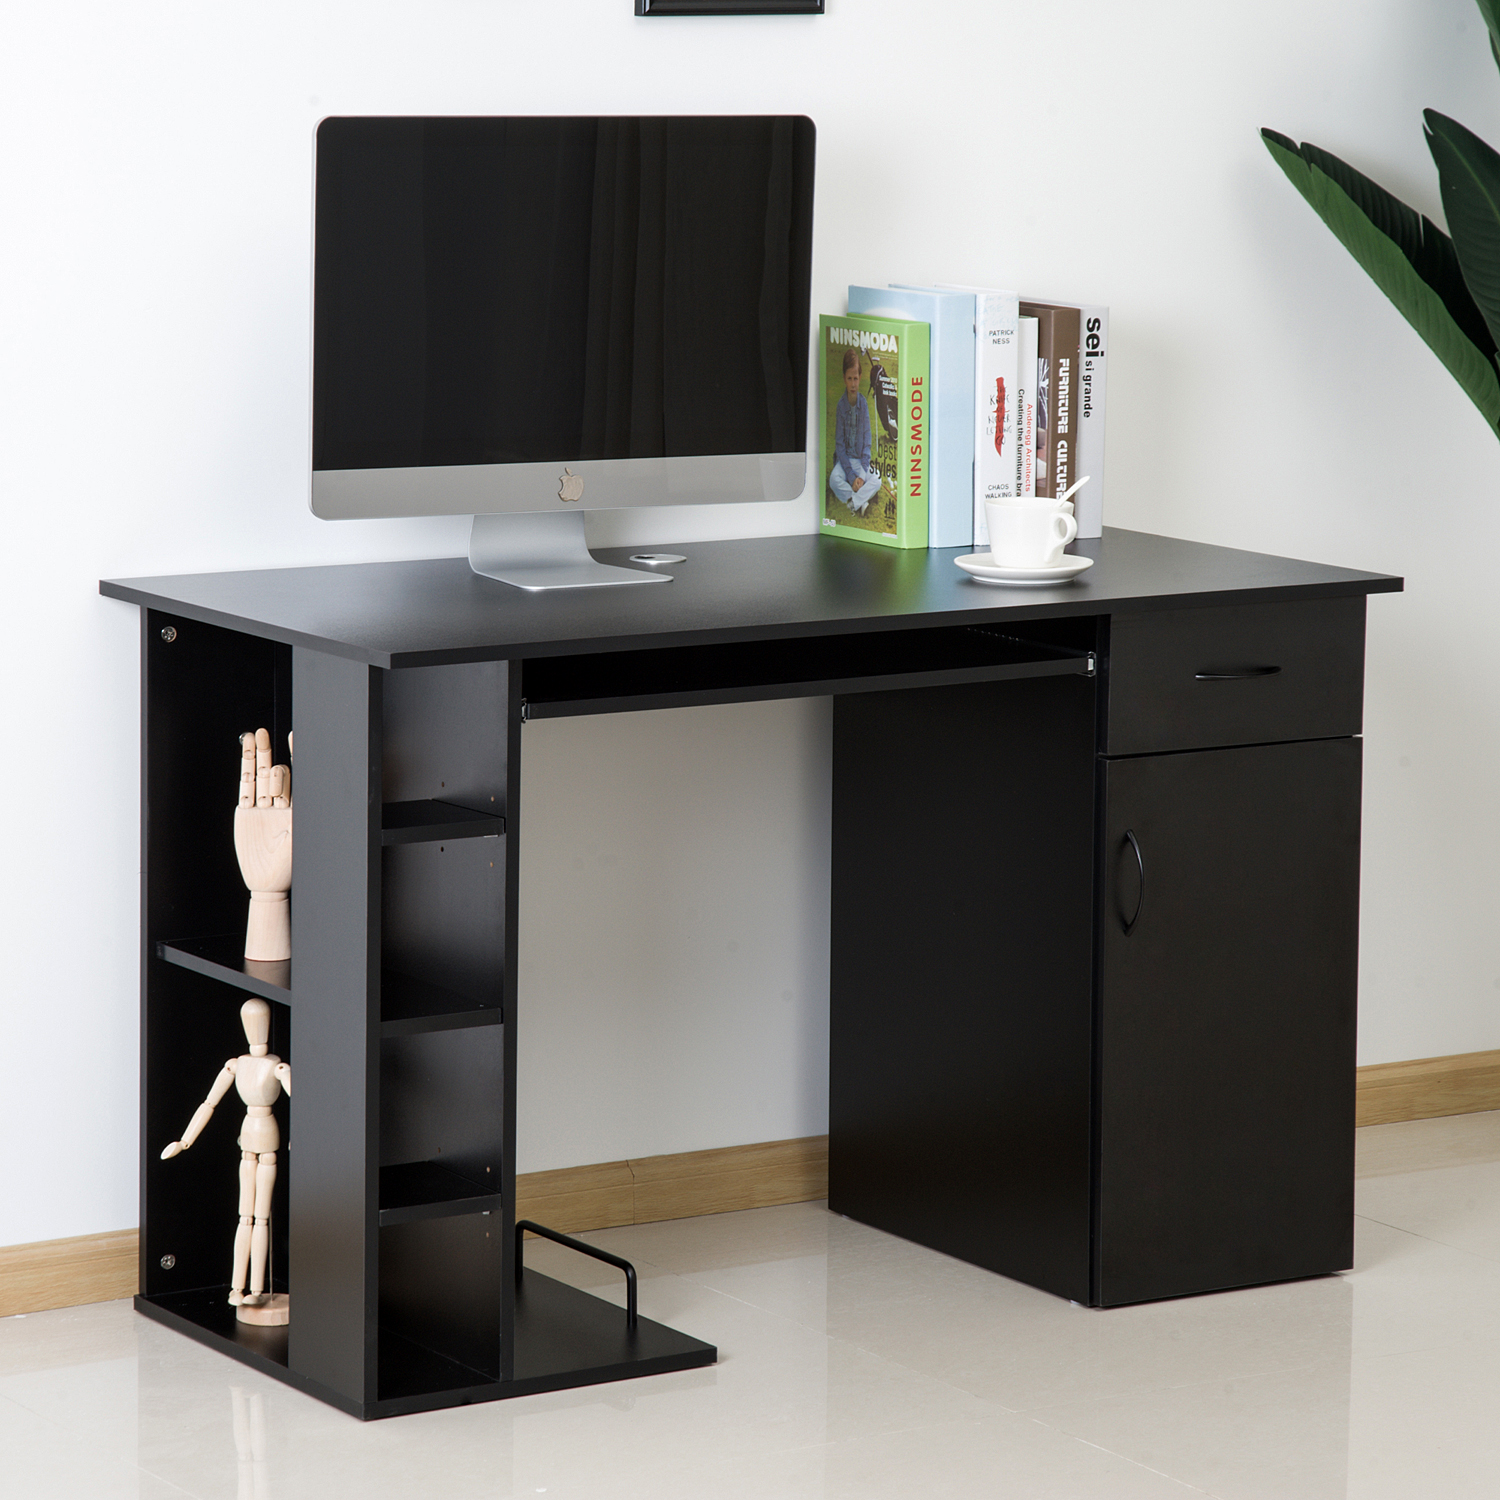 Home Office Computer Desk Study PC Table w/ Storage ...